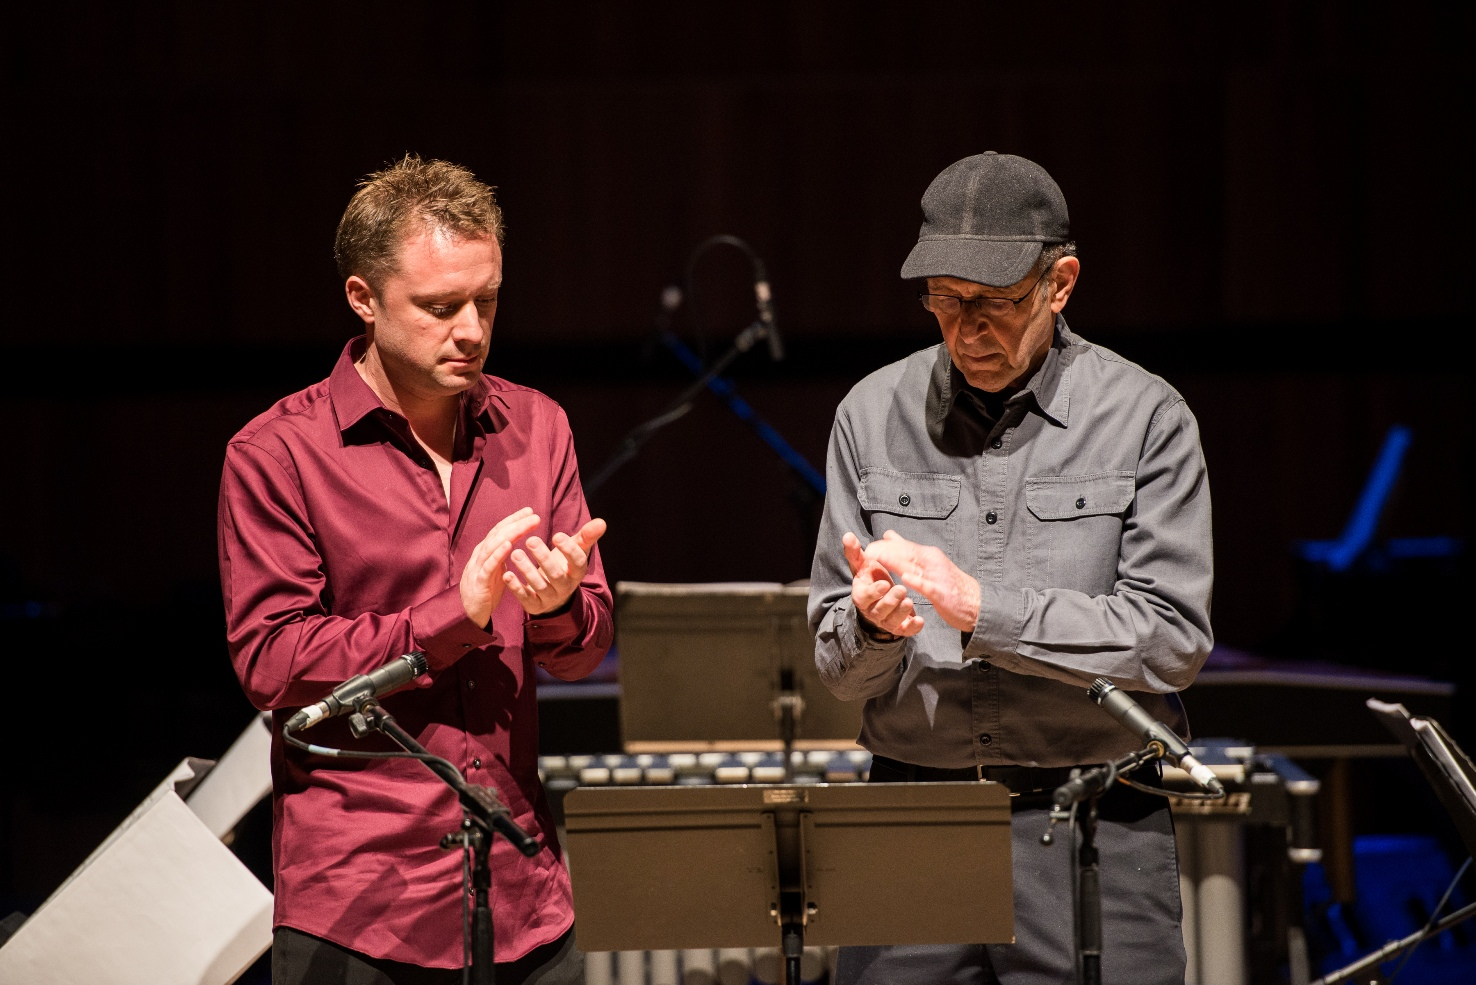 Colin Currie and Steve Reich clapping